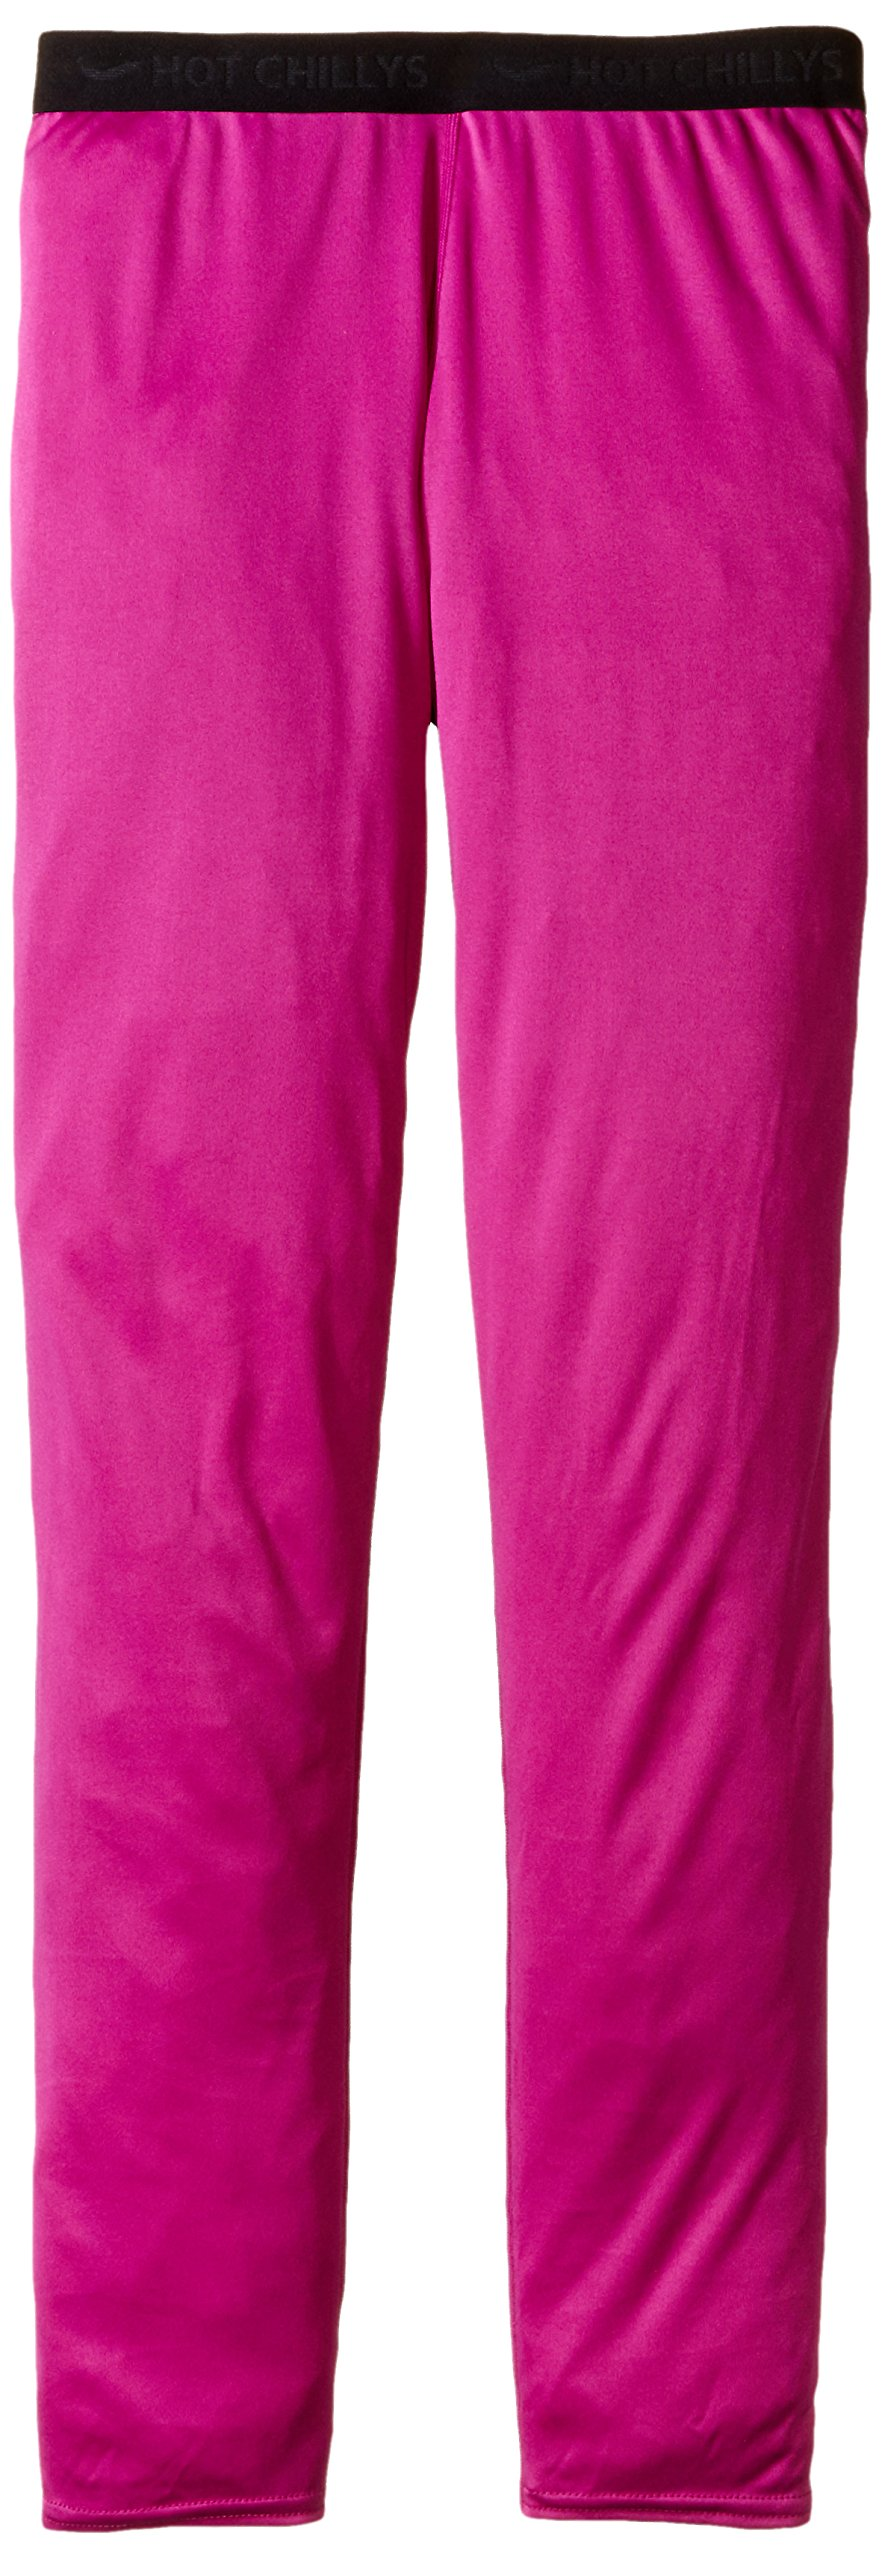 Hot Chillys Youth Peach Bottom, Large, Candyland Plum